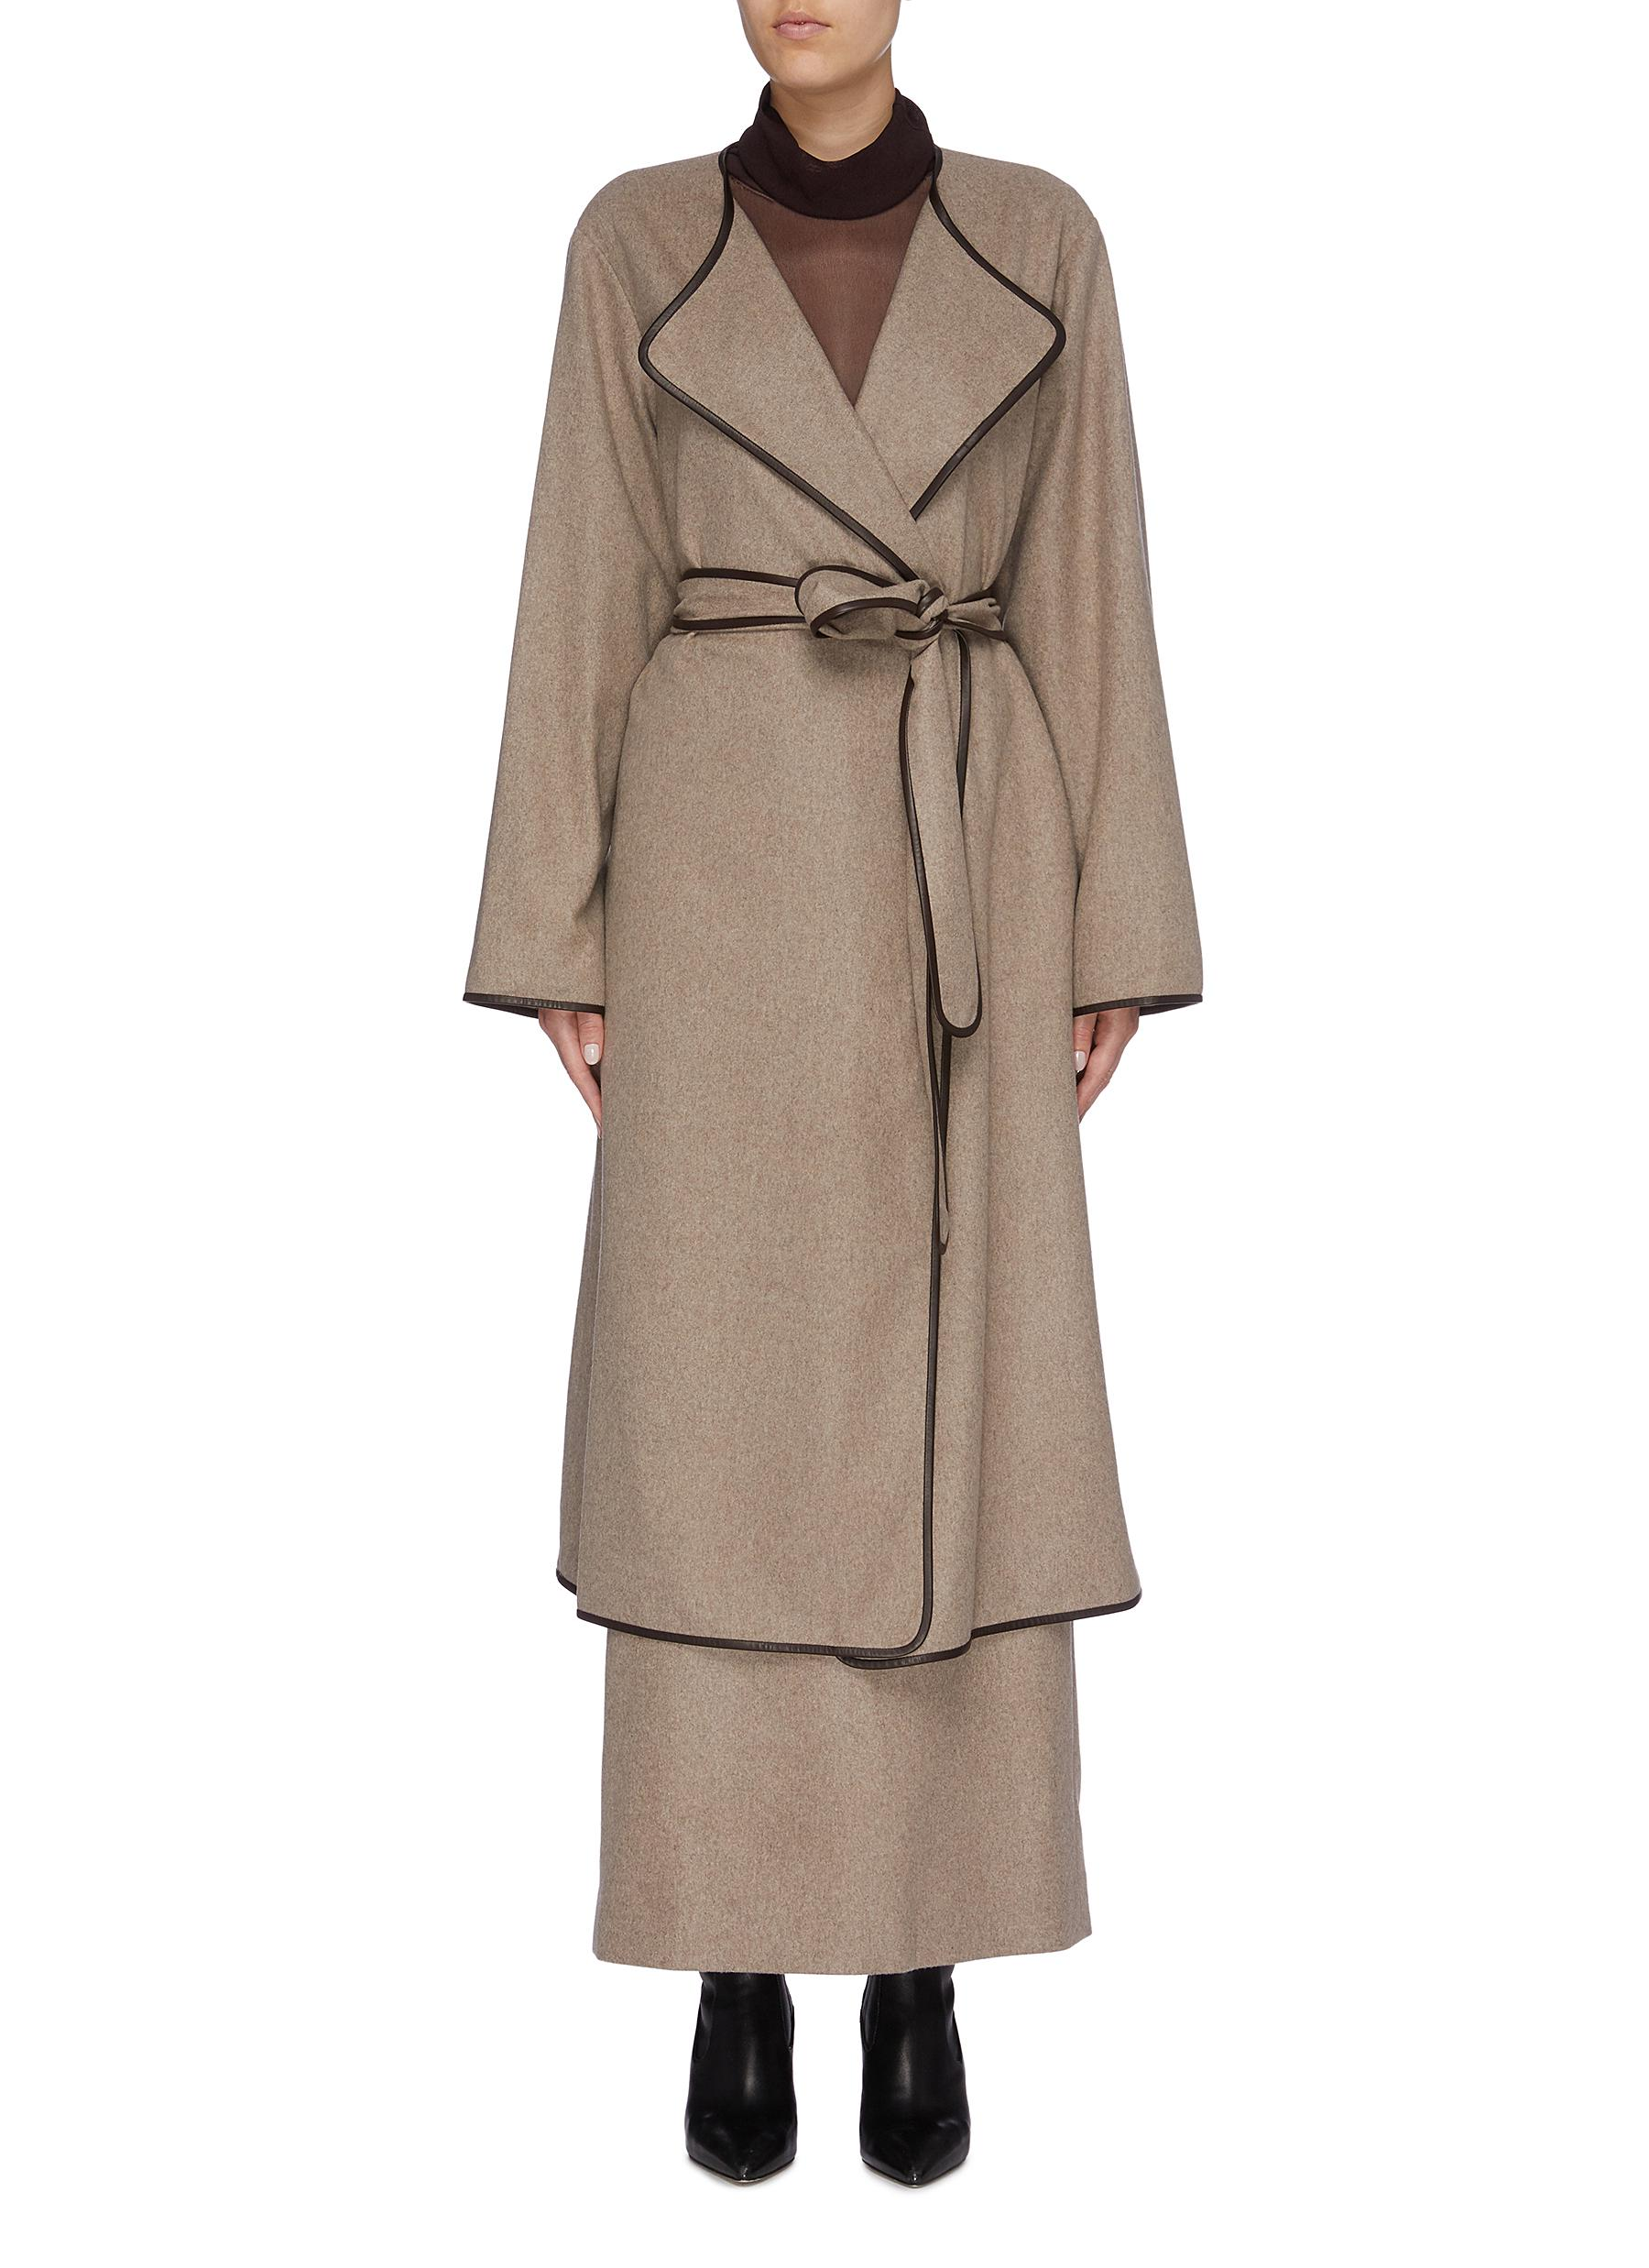 Helga belted contrast border cashmere coat by The Row